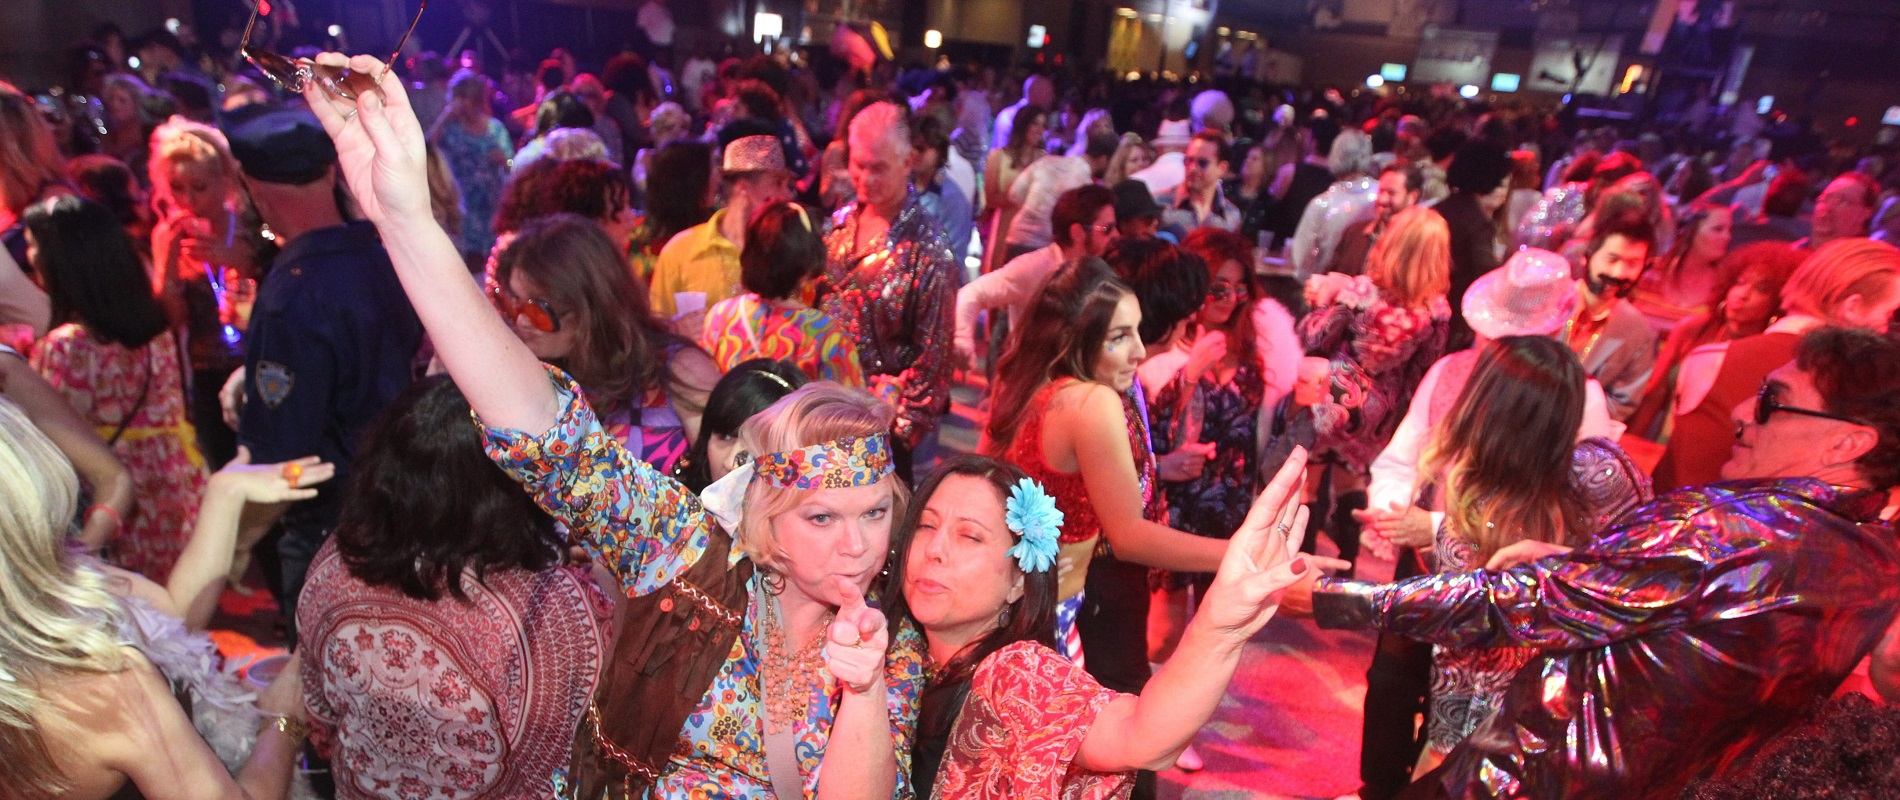 The Buffalo Niagara Convention Center becomes almost unrecognizable during the World's Largest Disco. (John Hickey/Buffalo News)